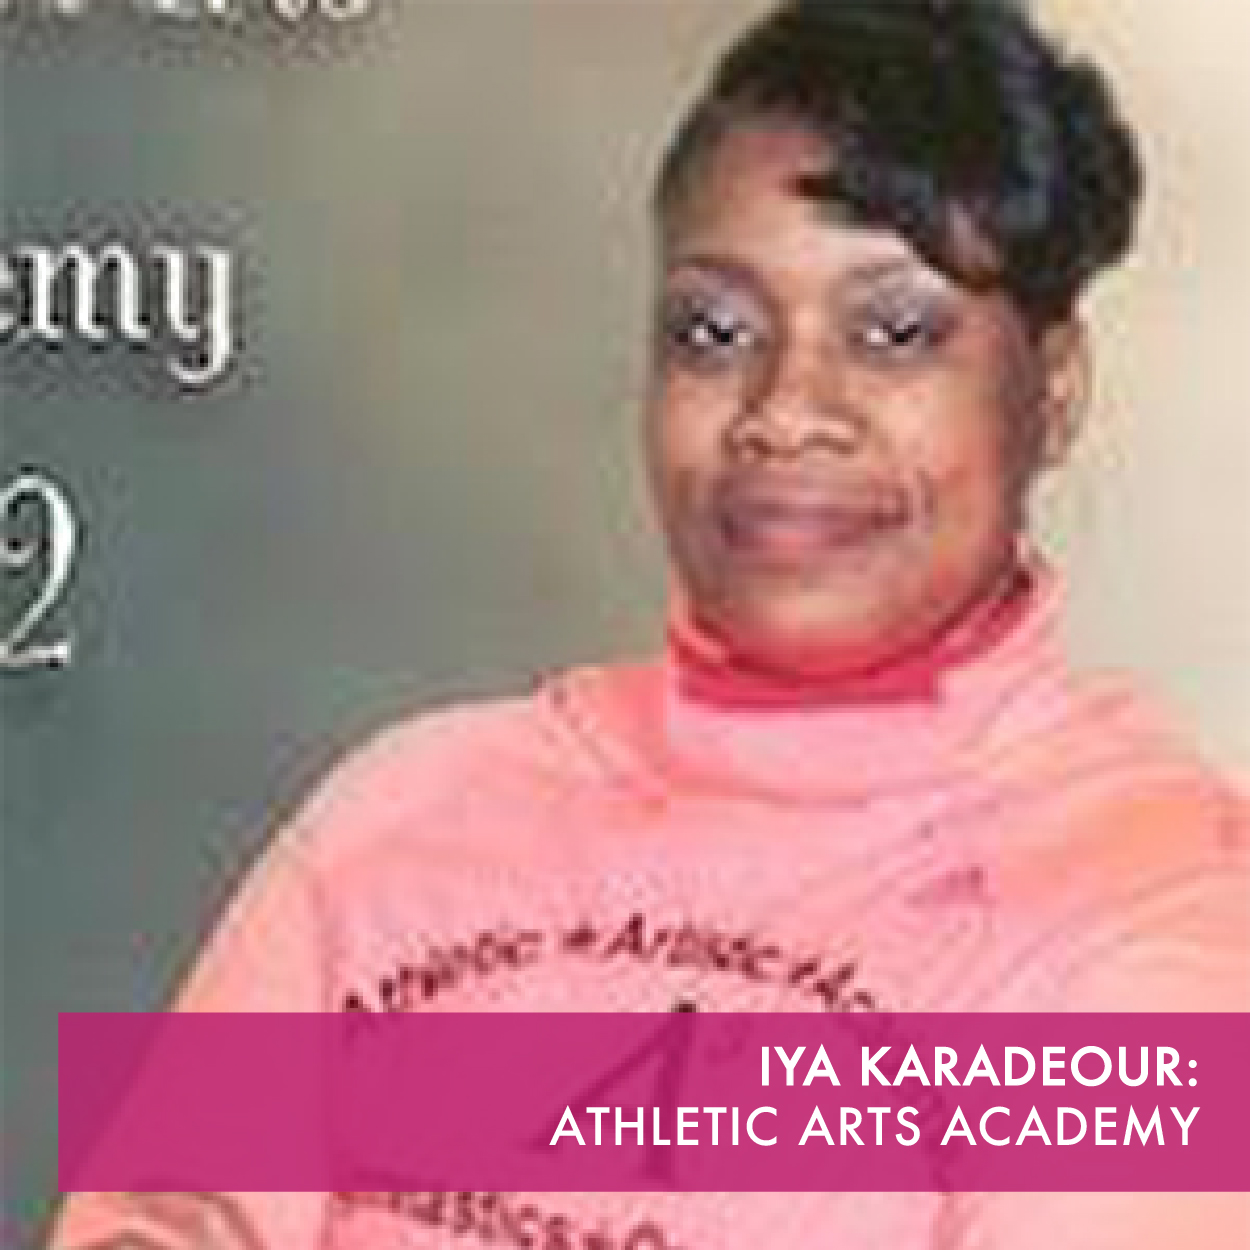 An Olympic-style youth gymnastics training facility in New Jersey for ages 5 and up. With the goal of instilling a strong desire for healthy living and self-determination in young athletes.